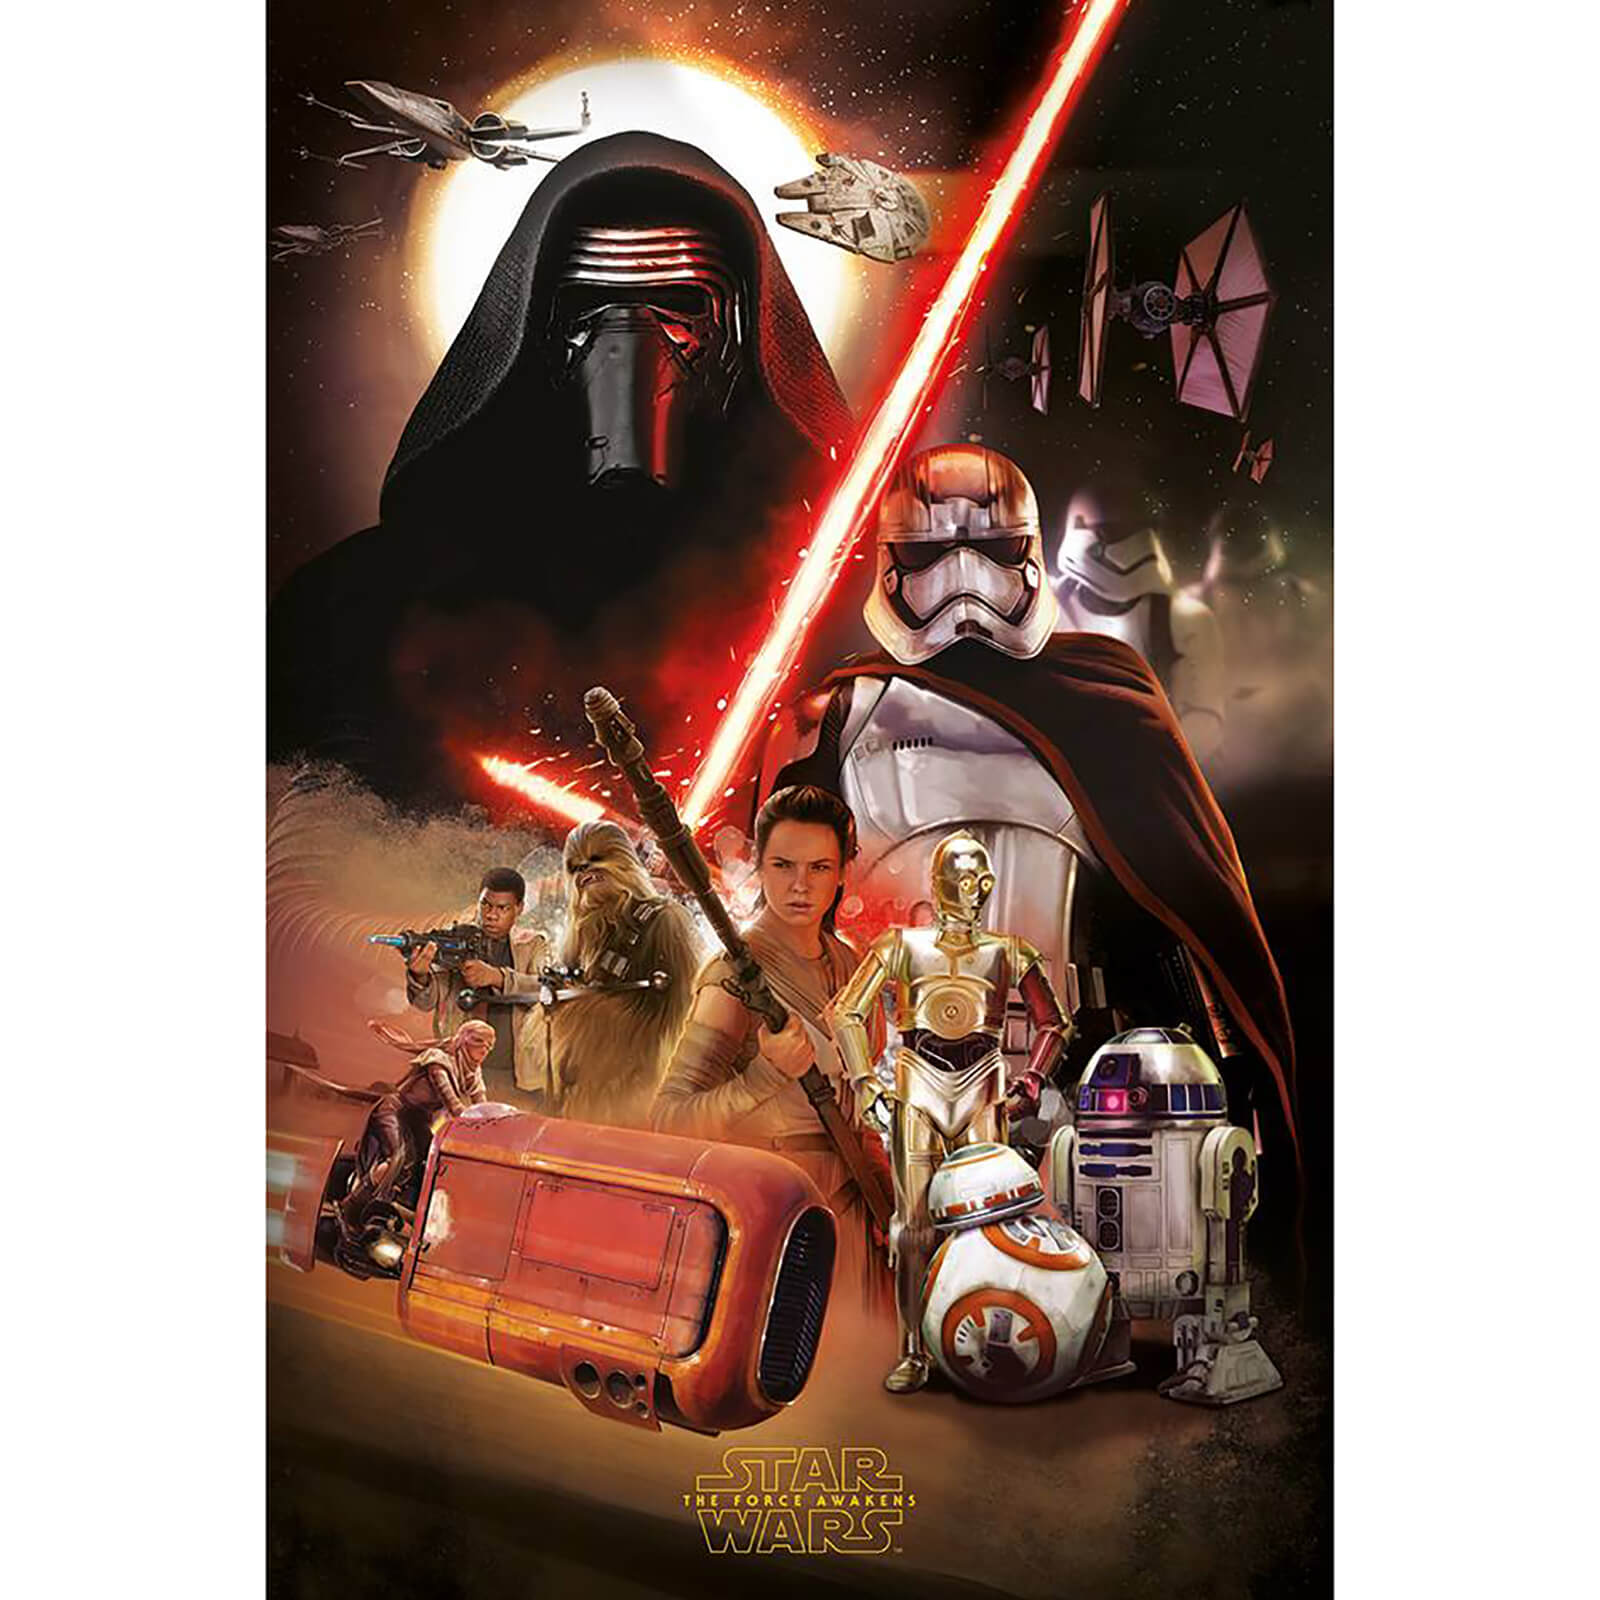 Star Wars: The Force Awakens Stormtrooper Running - 24 x 36 Inches Maxi Poster